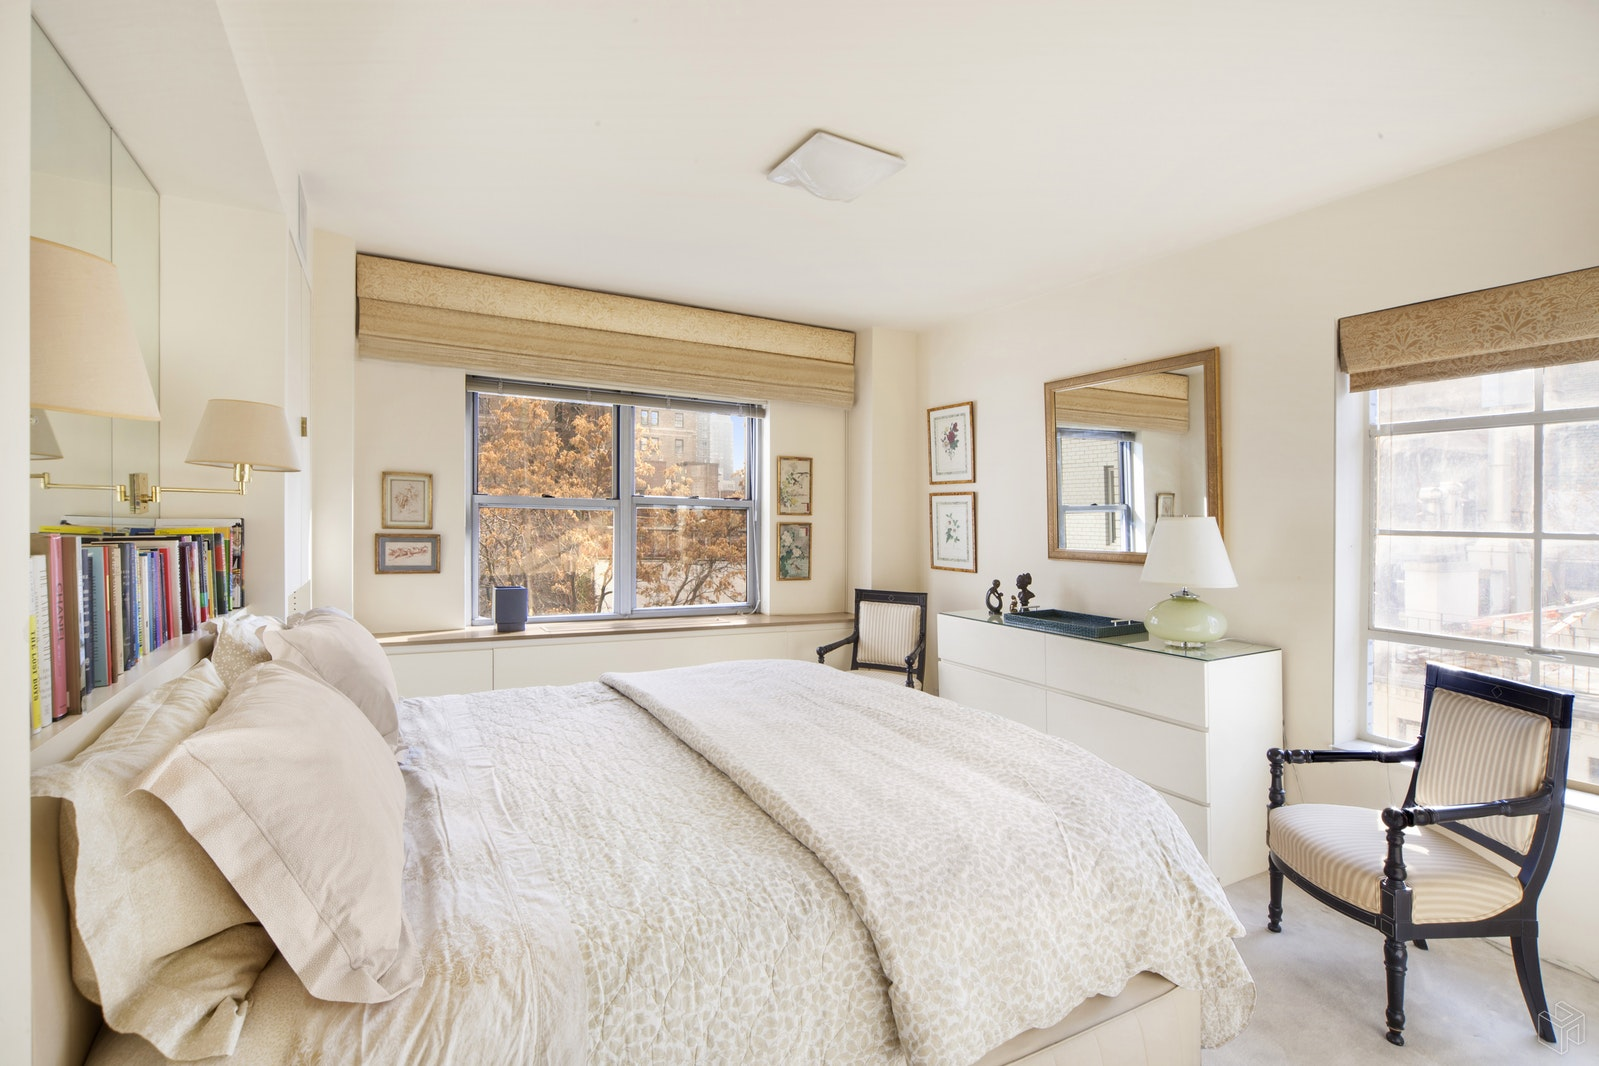 605 Park Avenue 7Ab, Upper East Side, NYC, 10021, $3,995,000, Property For Sale, ID# 17992983, Halstead